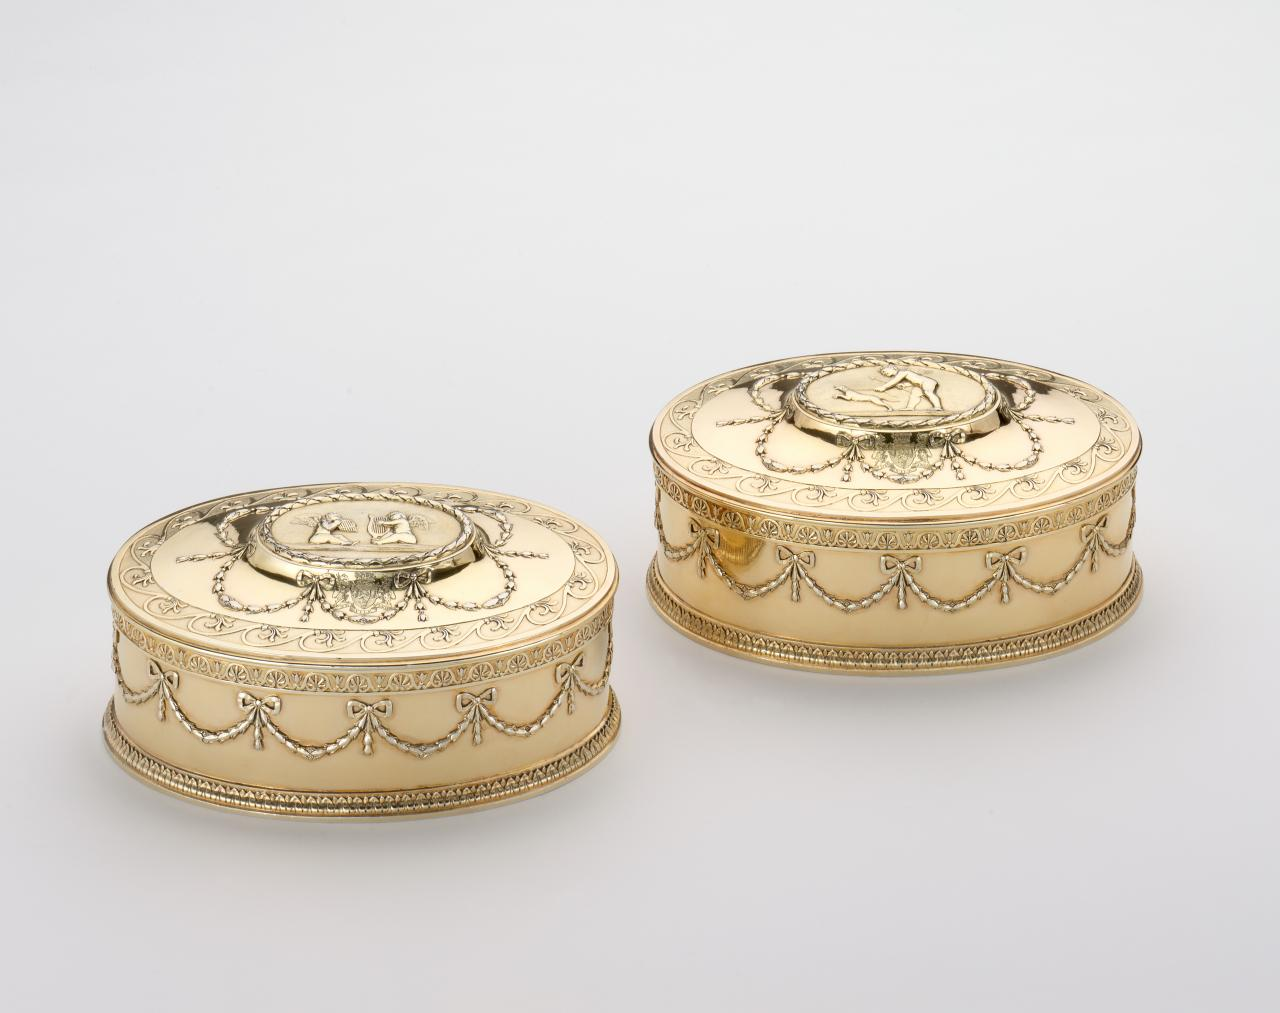 Pair of boxes from the Countess of Westmorland toilet service